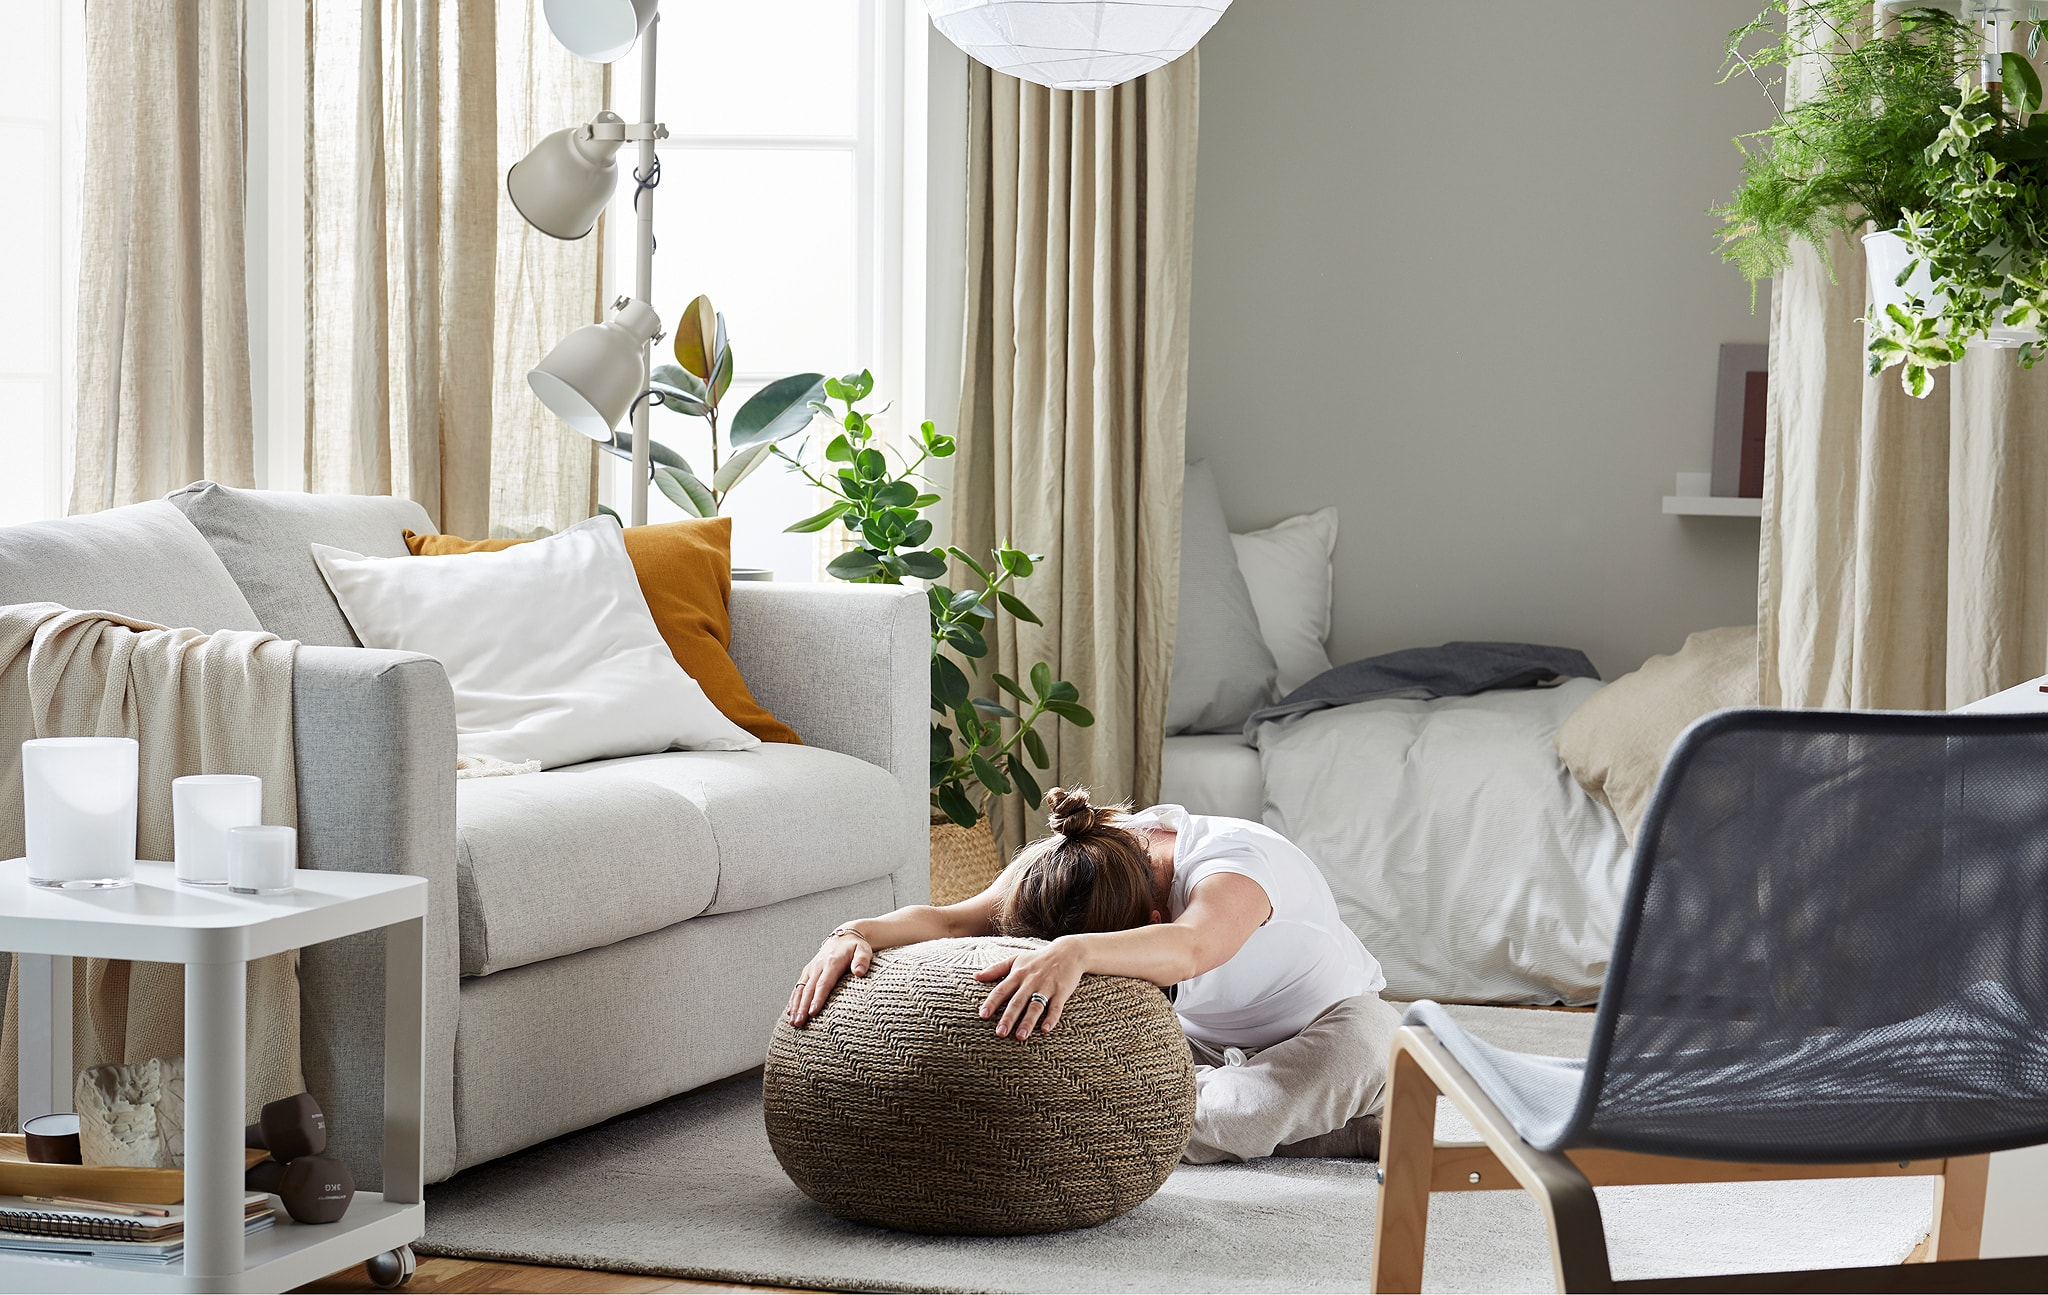 Create space for well-being habits at home